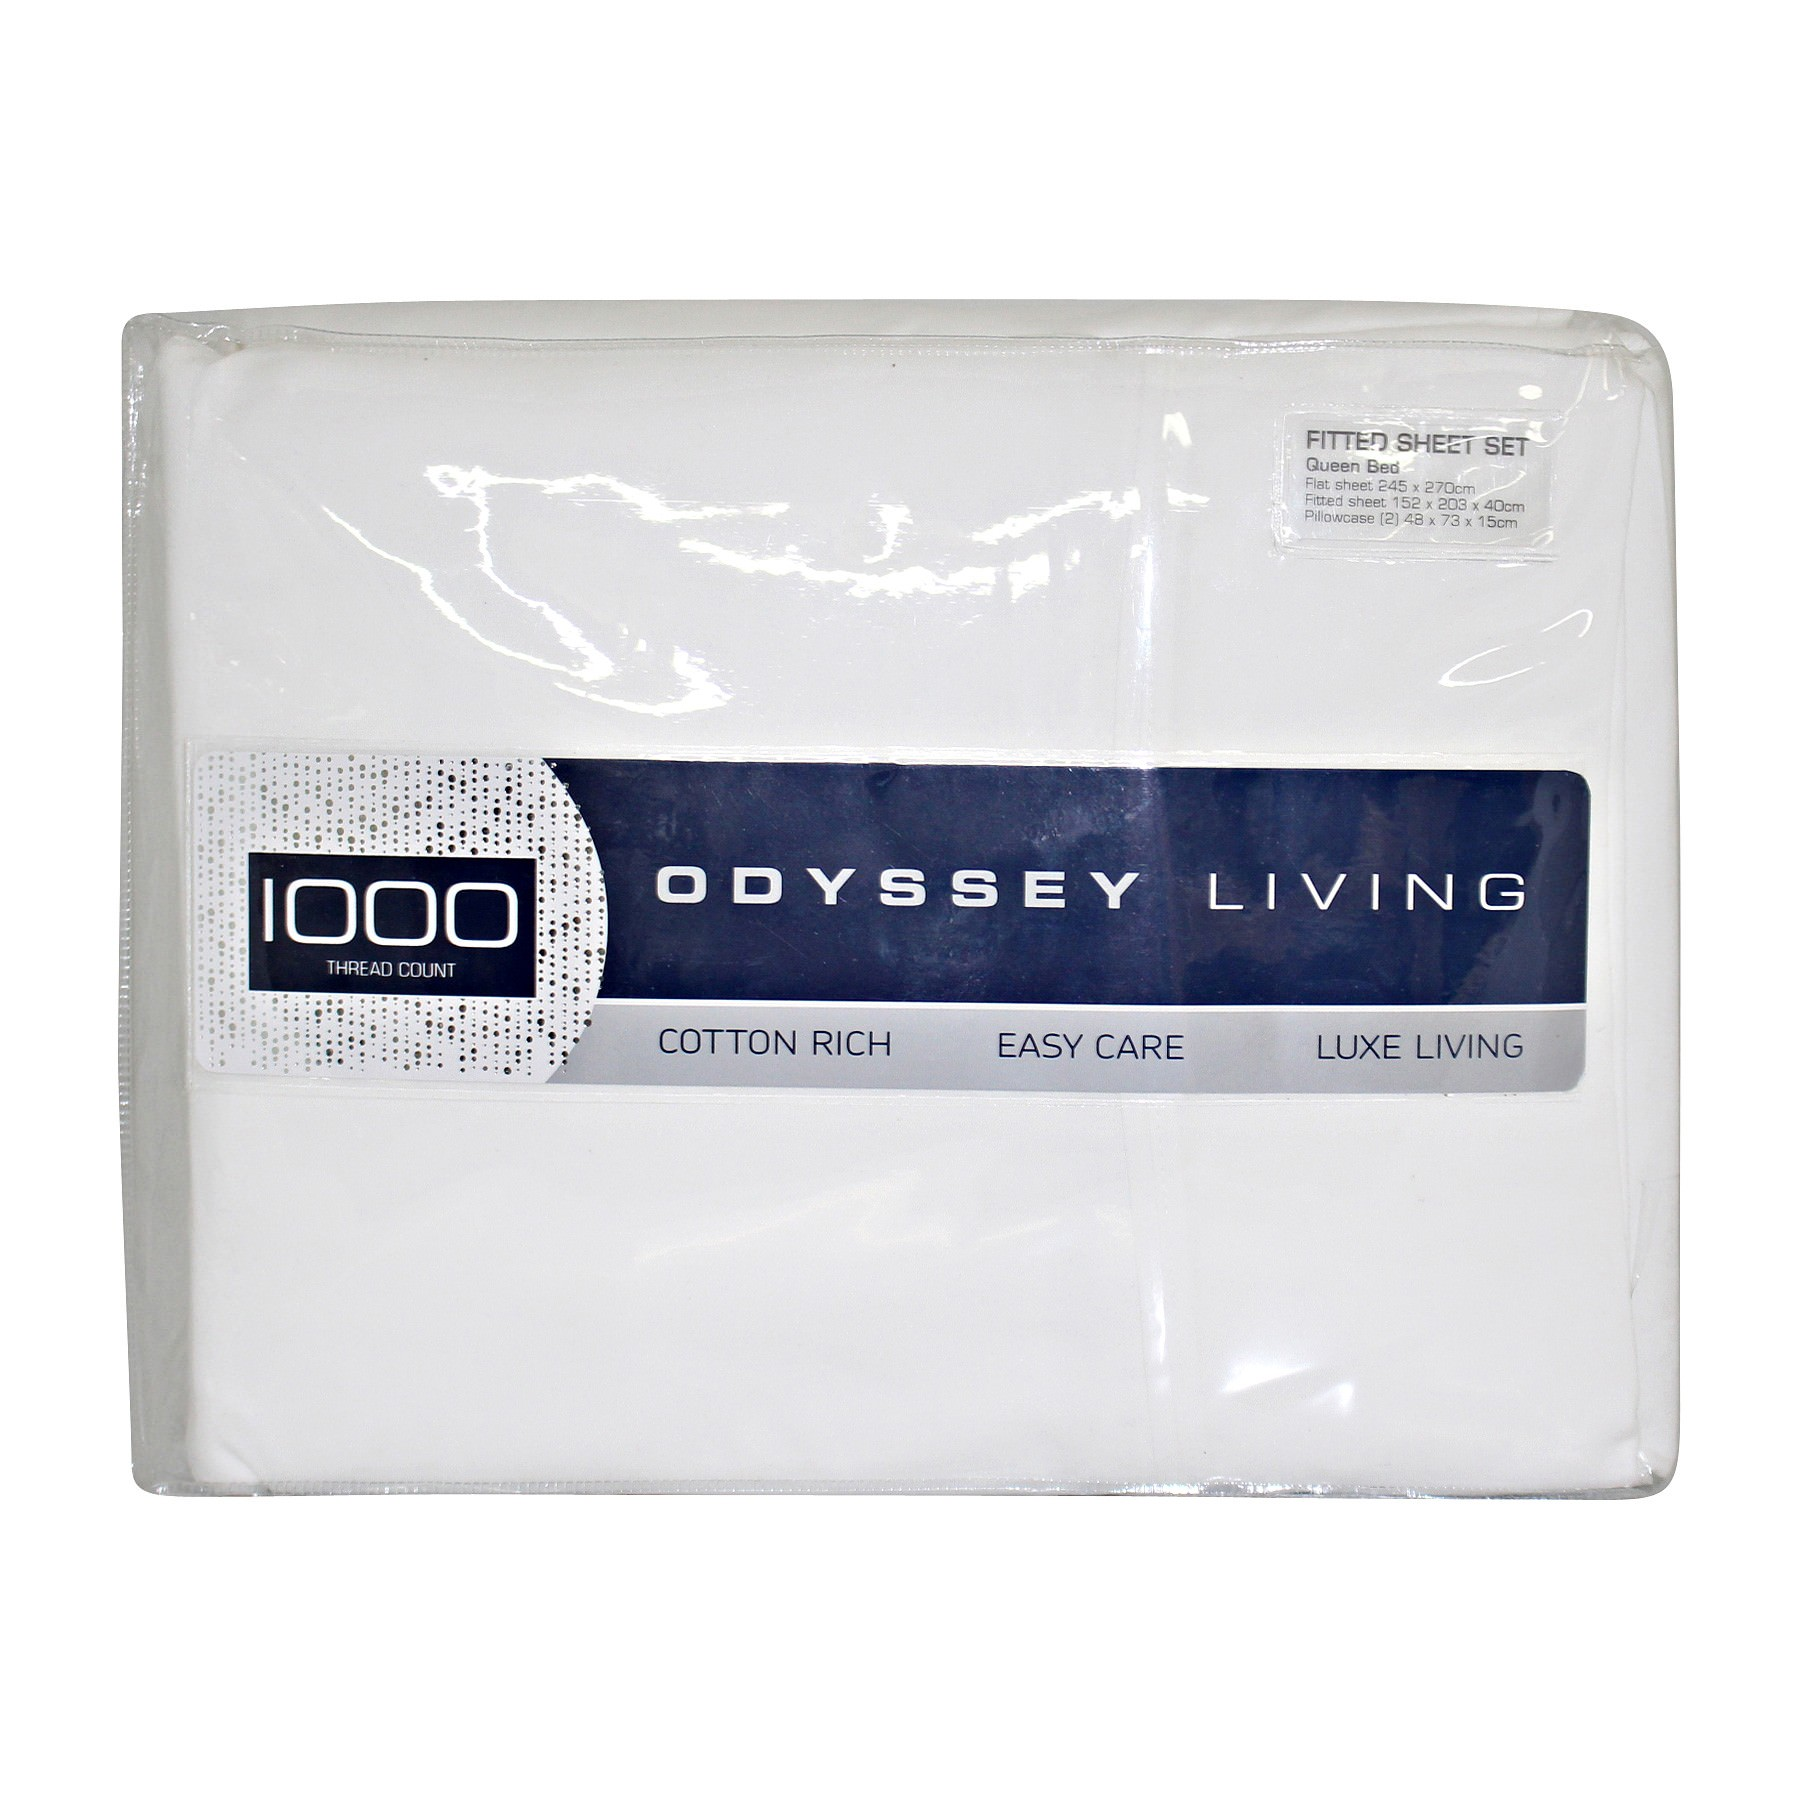 Odyssey Living 1000TC Cotton Rich Sheet Set, Queen, White